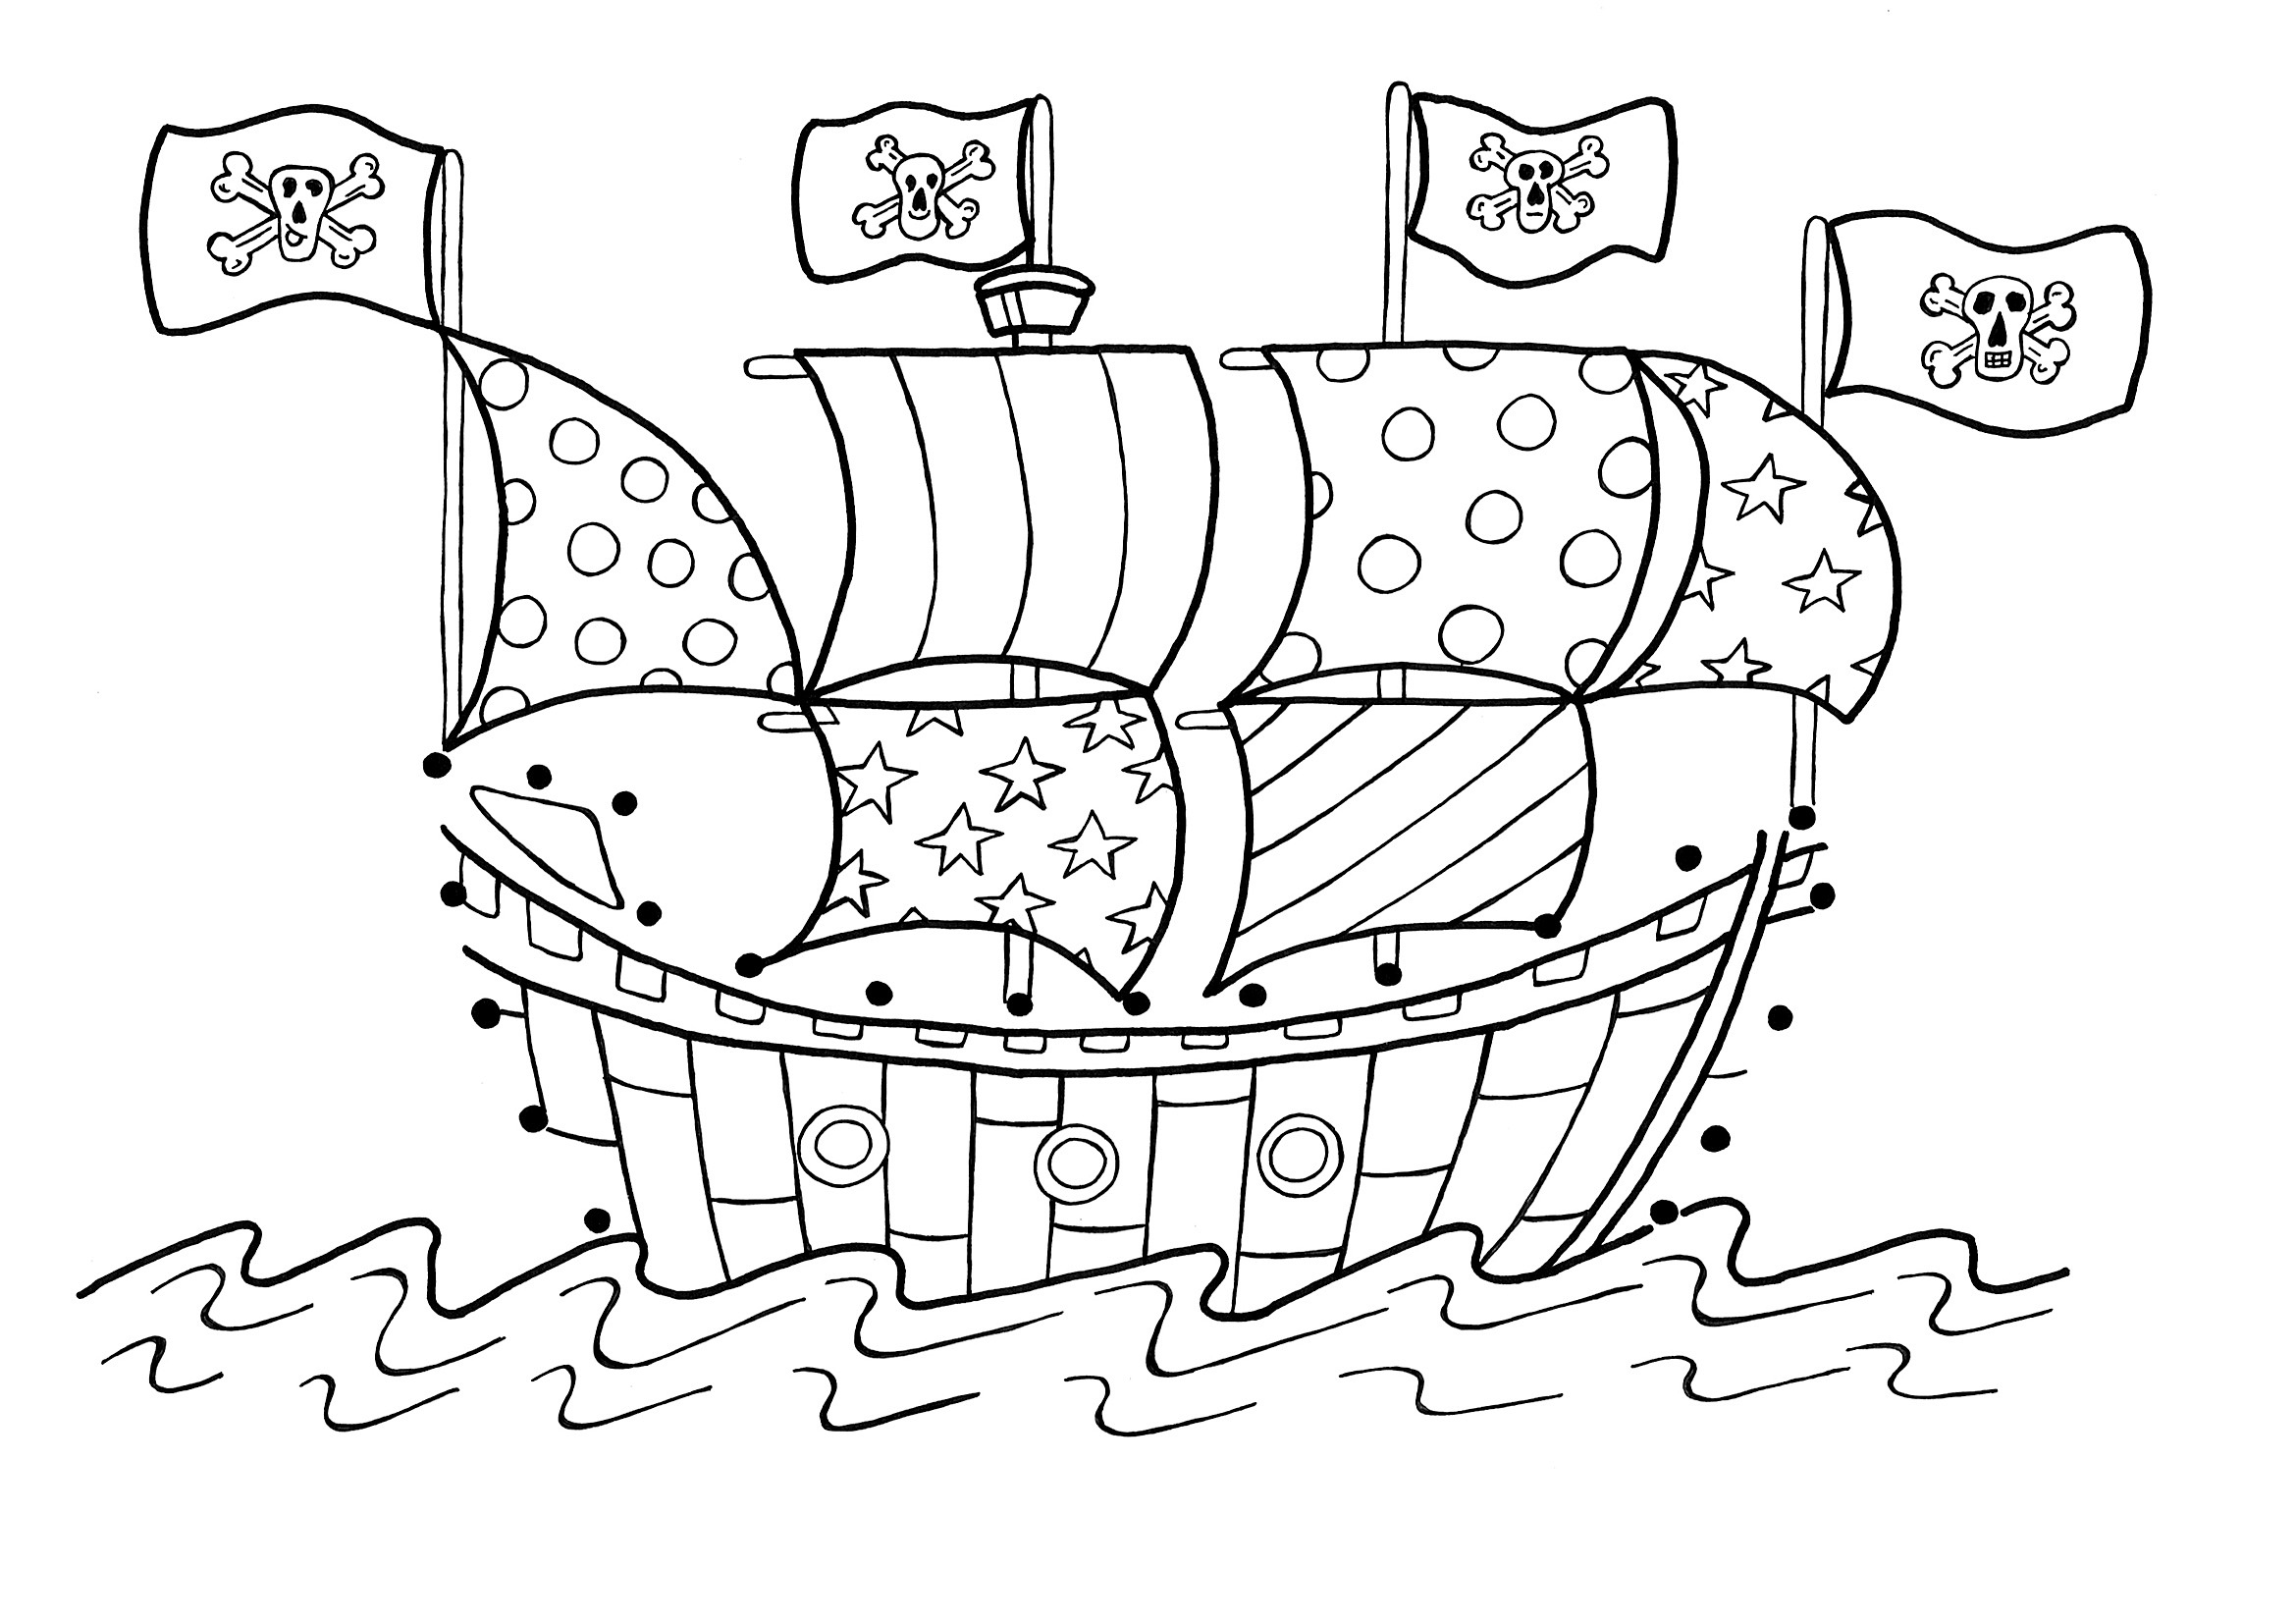 pirate ship coloring page - Pirate Coloring Page